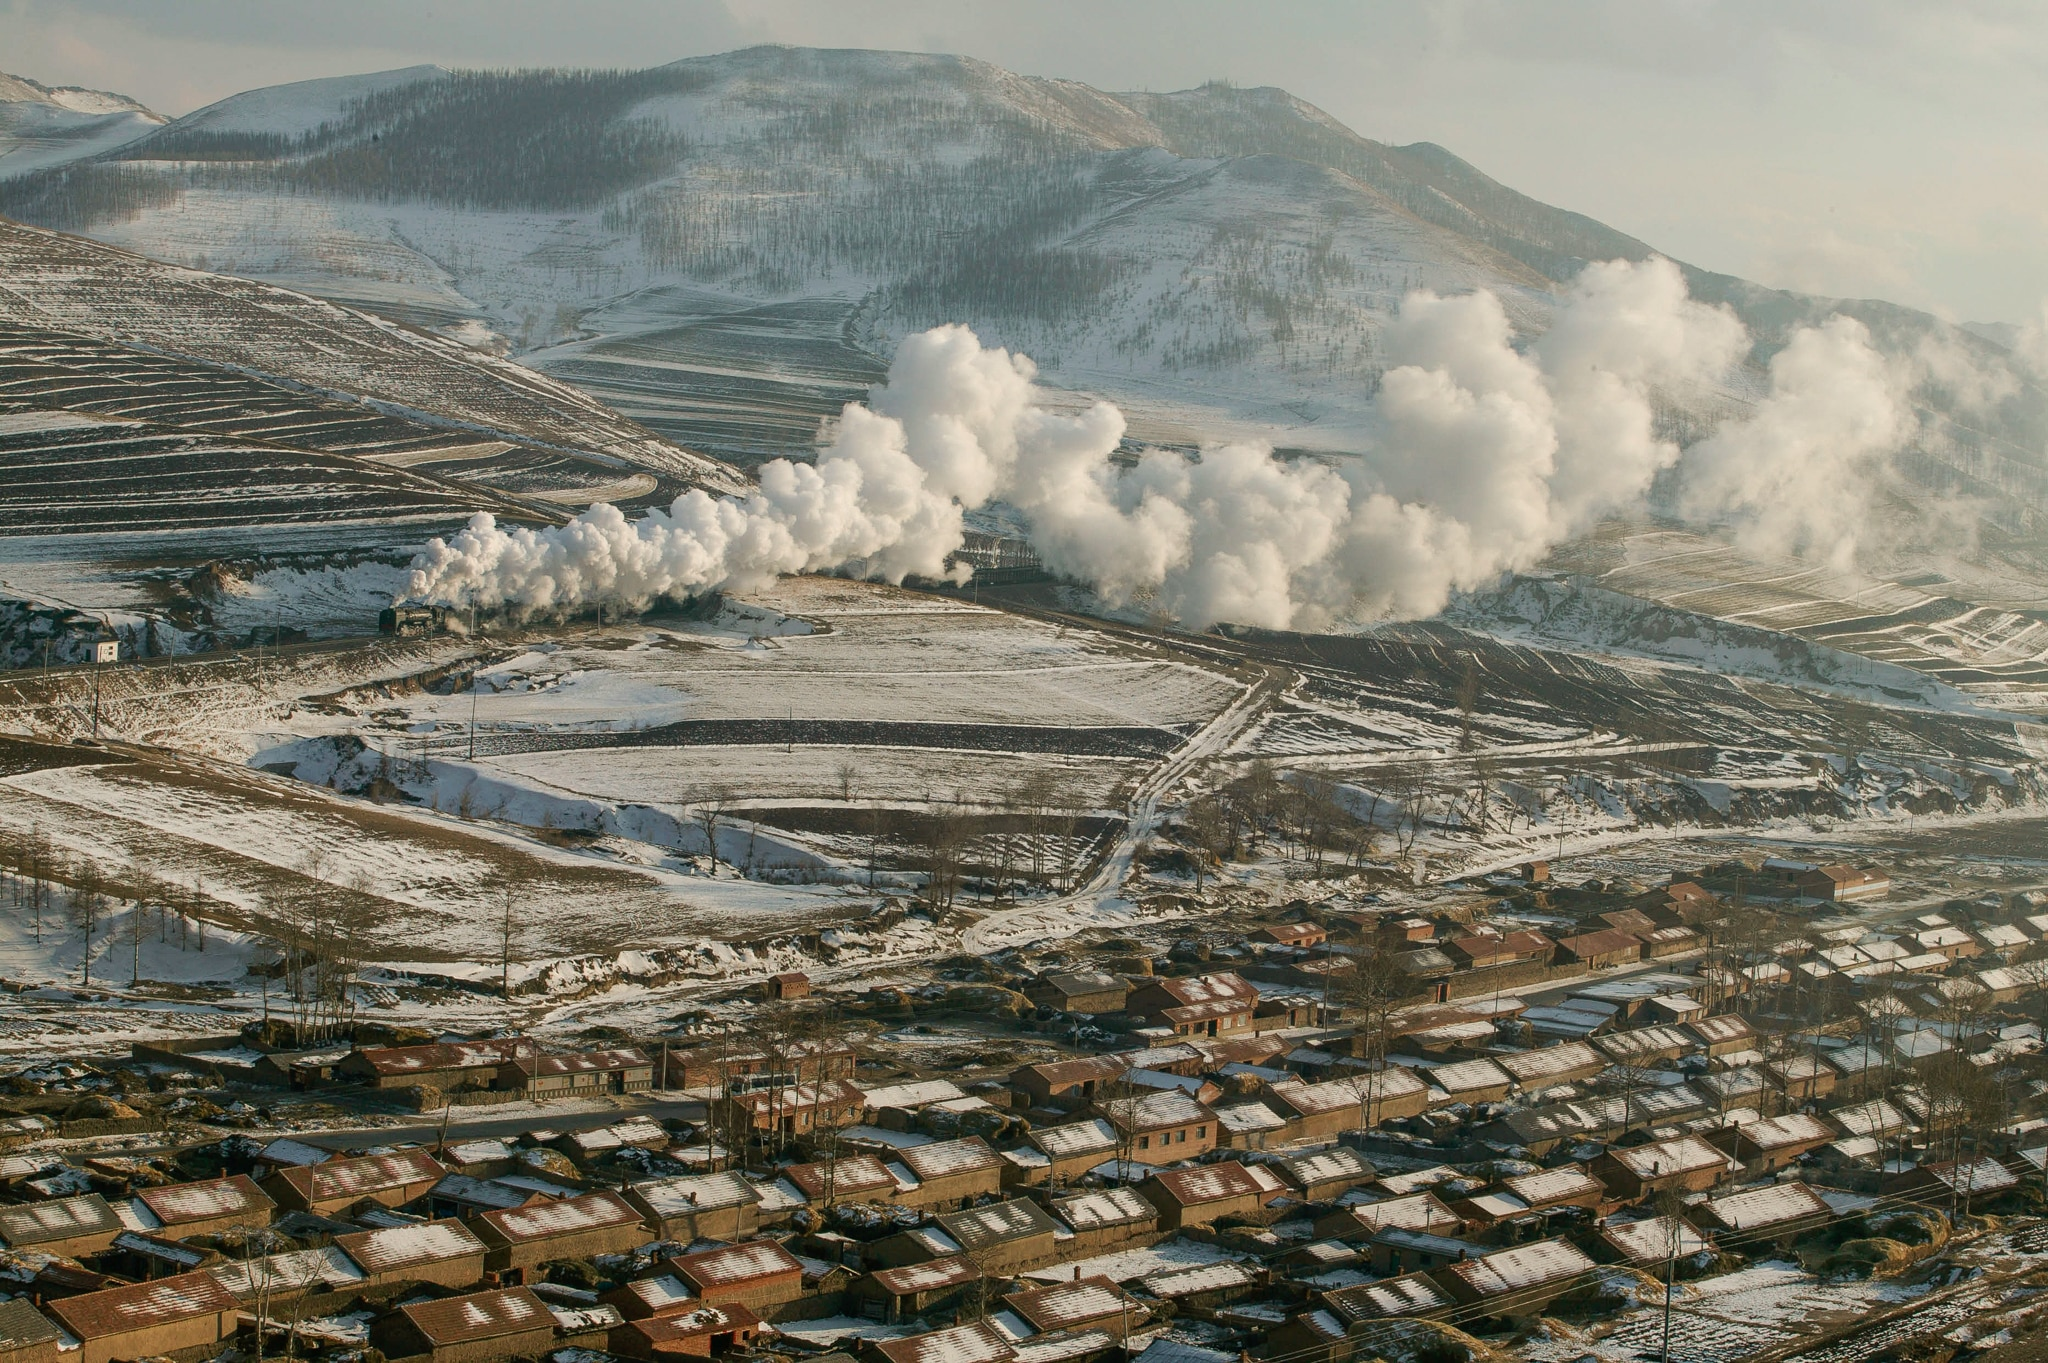 Panorama invernal con una enorme chimenea (© Rail Photo/Construction Photography/Avalon/Getty Images)